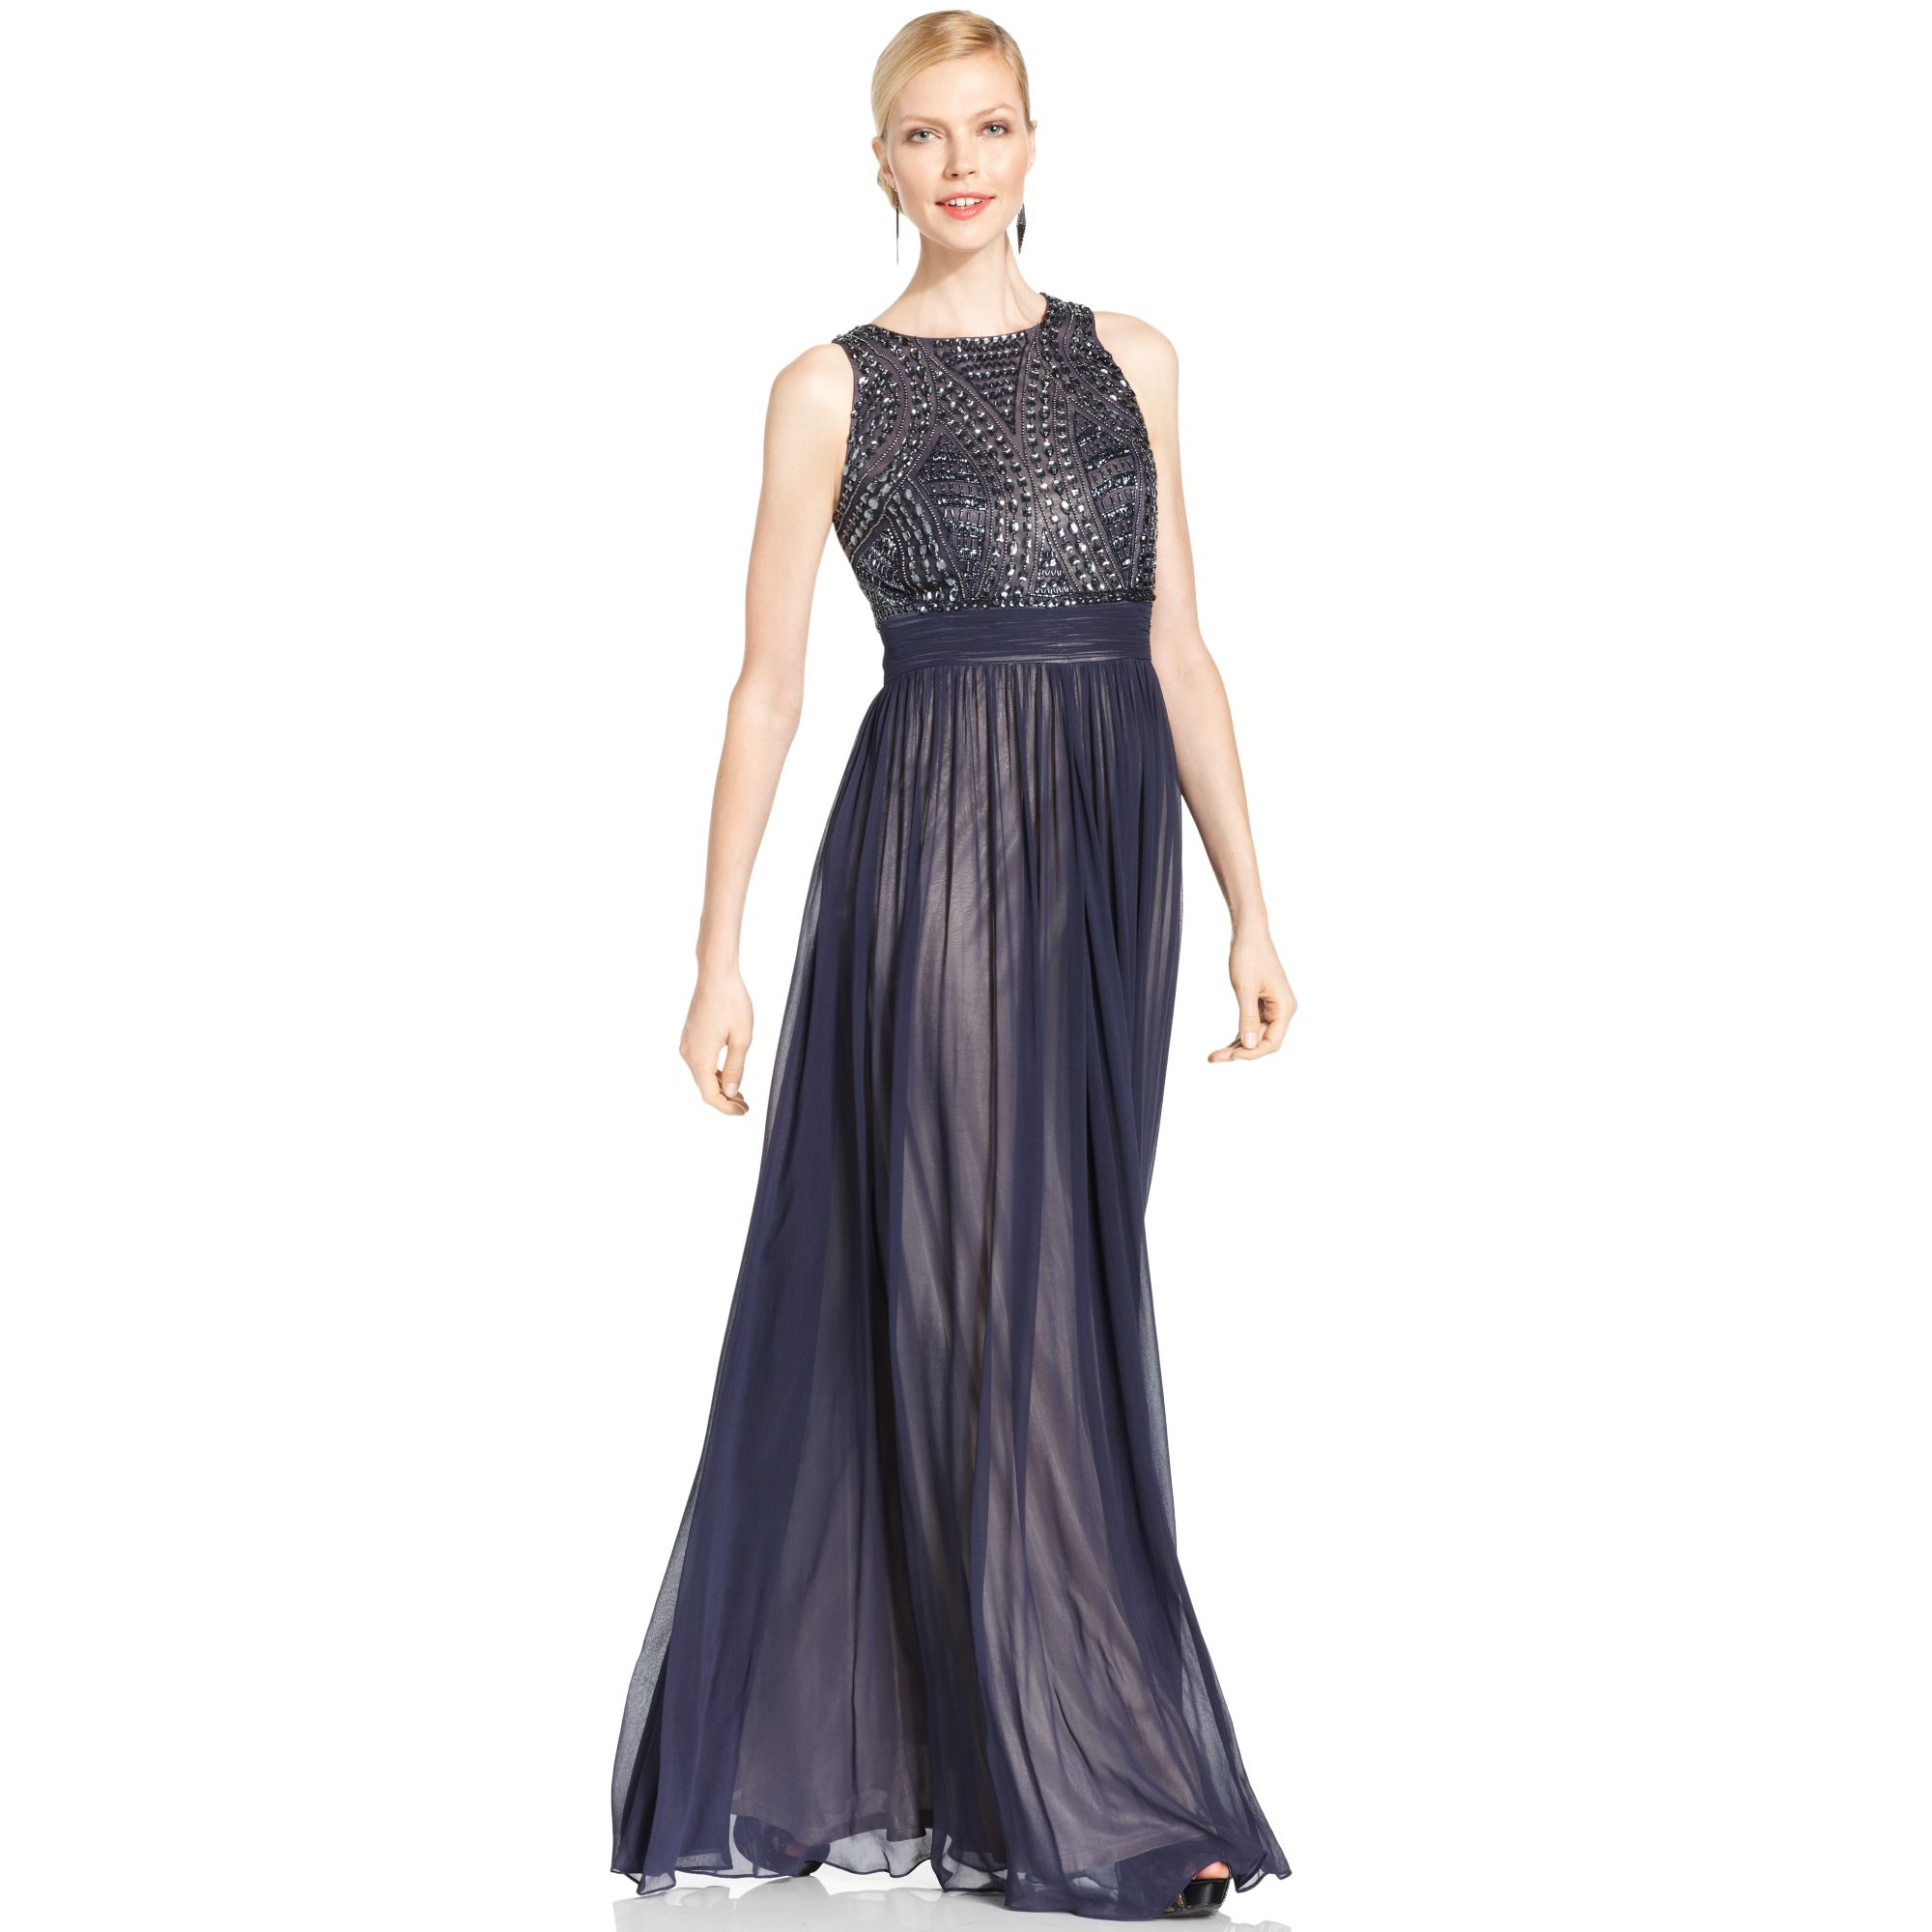 Lyst Js Collections Sleeveless Beaded Empirewaist Gown In Blue